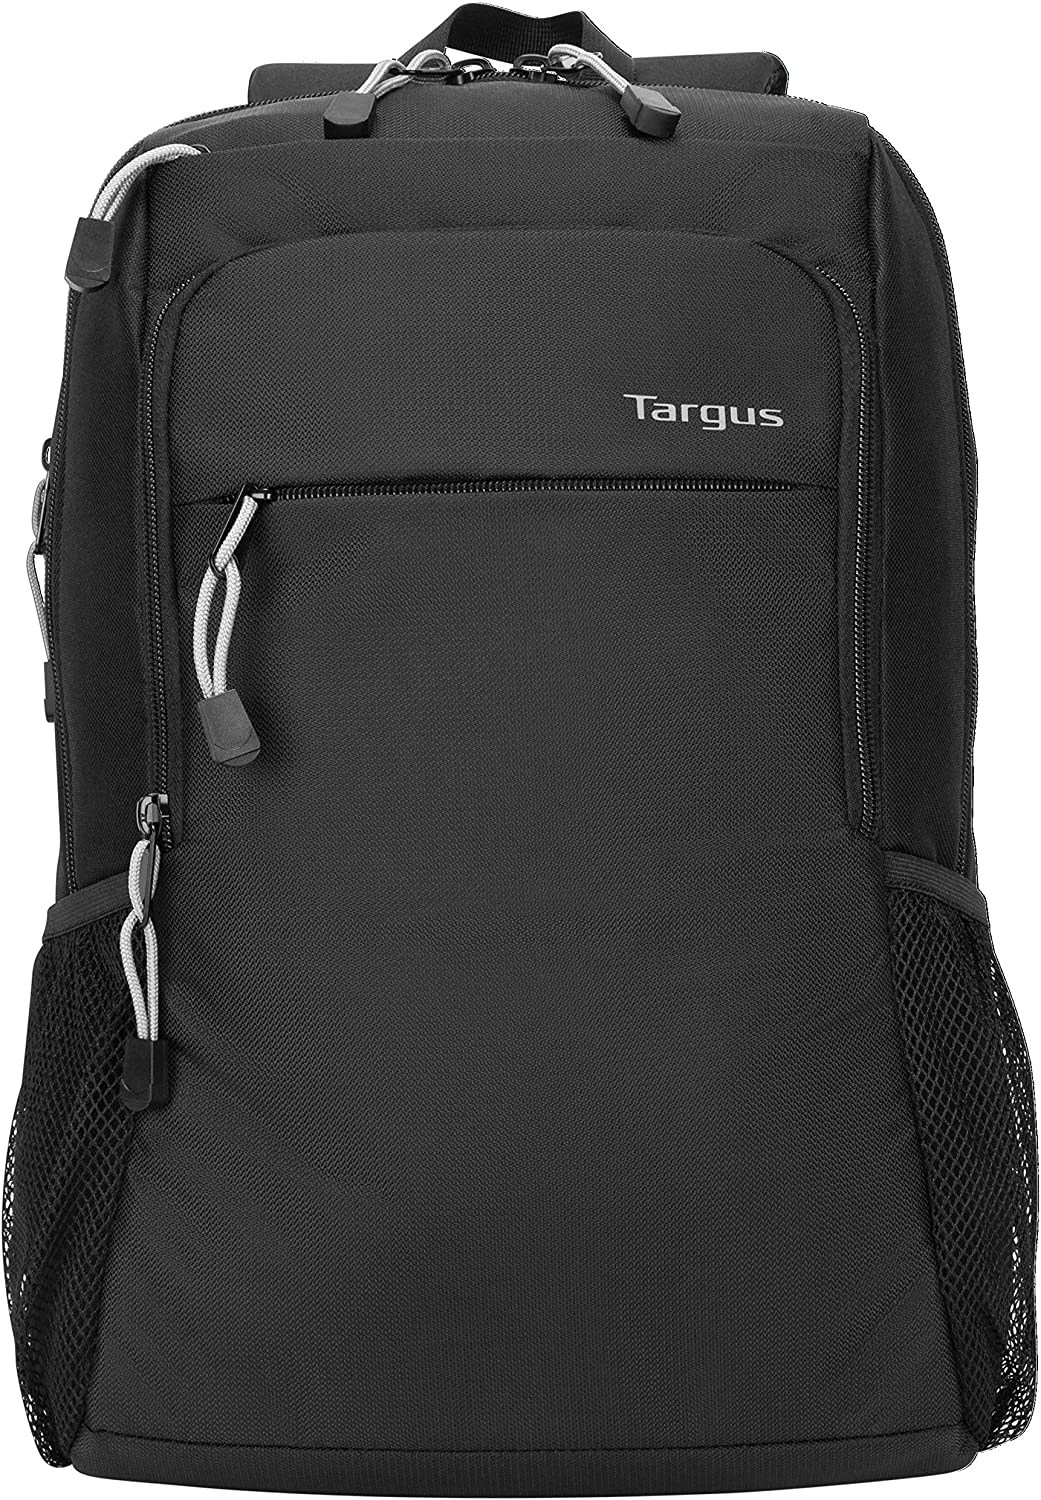 Targus Intellect Advanced Laptop Backpack for Lightweight Water-Resistant Slim Travel with Padded Back Support, Quick Access Stash Pouch, Protective Sleeve for 15.6-Inch, Black (TSB968GL)